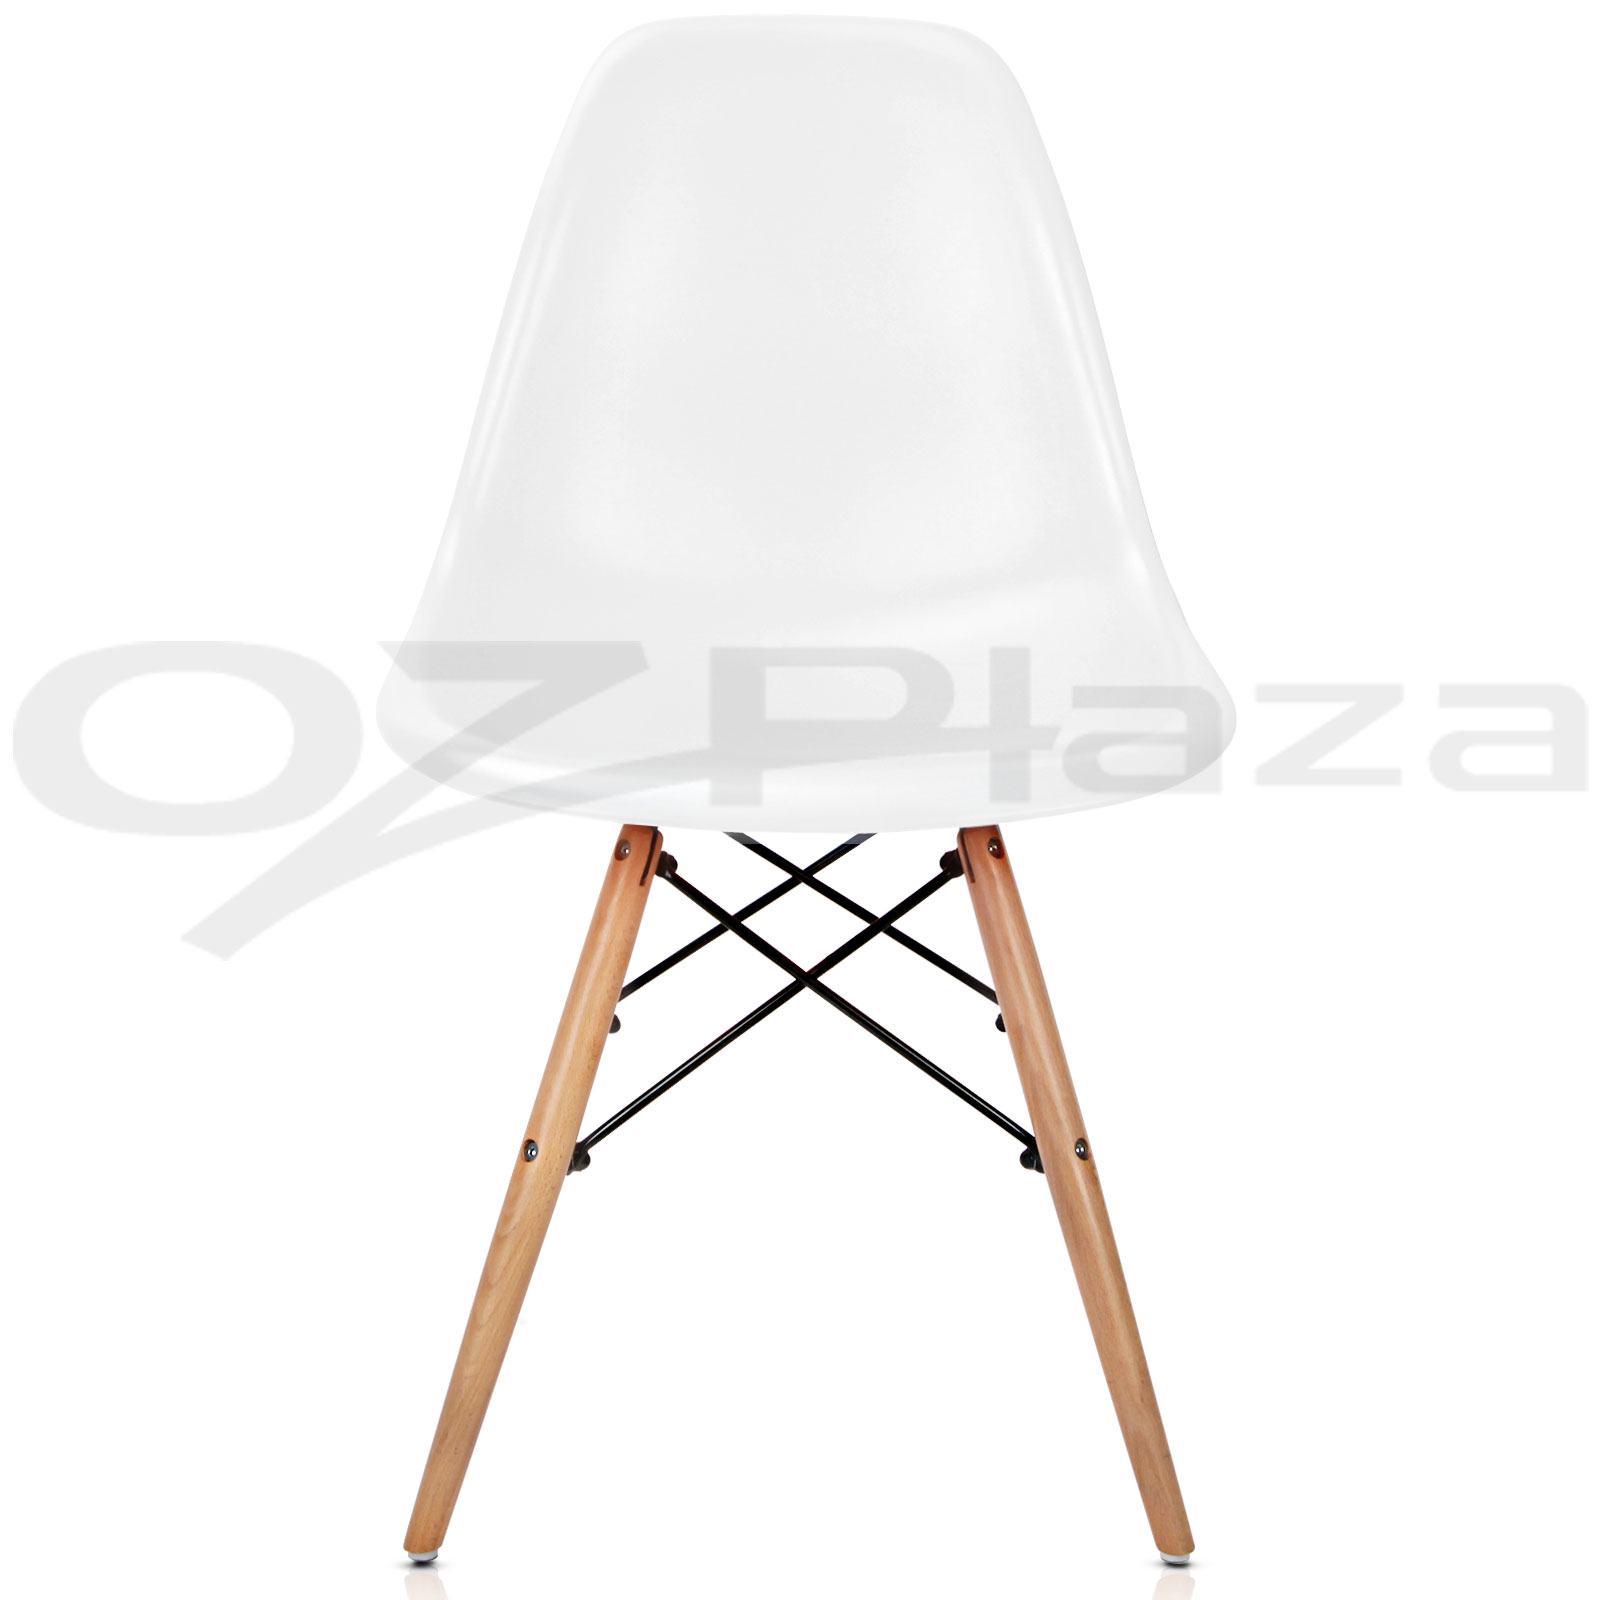 1x wooden dining table 4x eames replica dsw retro dining chairs wh 2